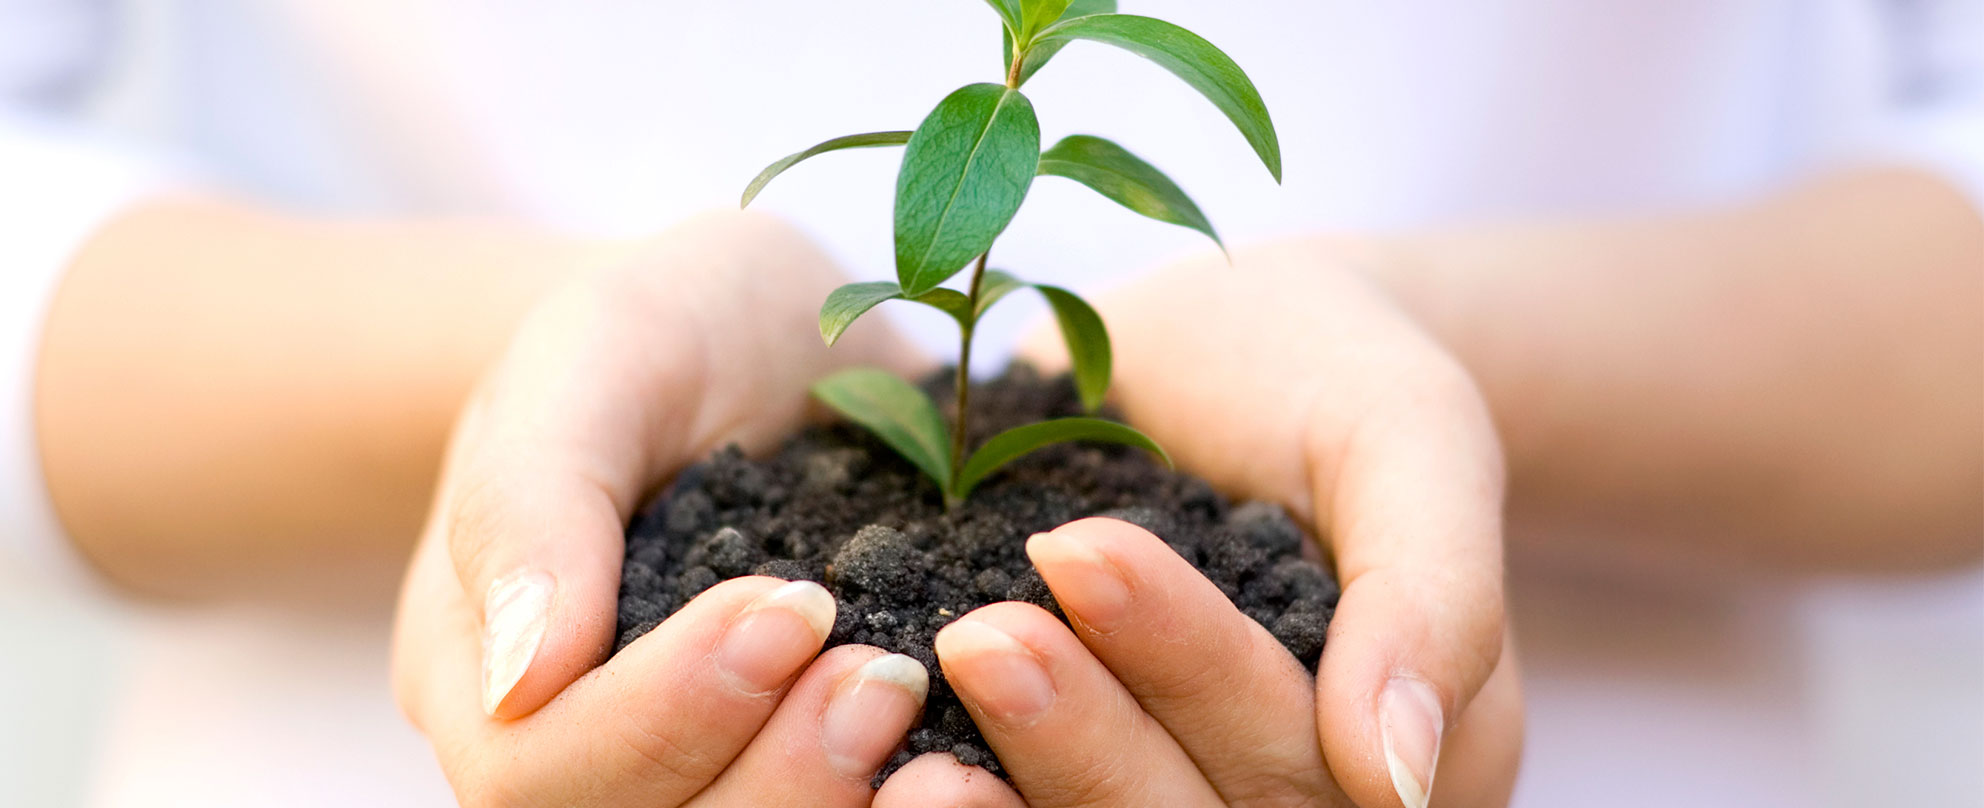 Hands nurturing growing plant